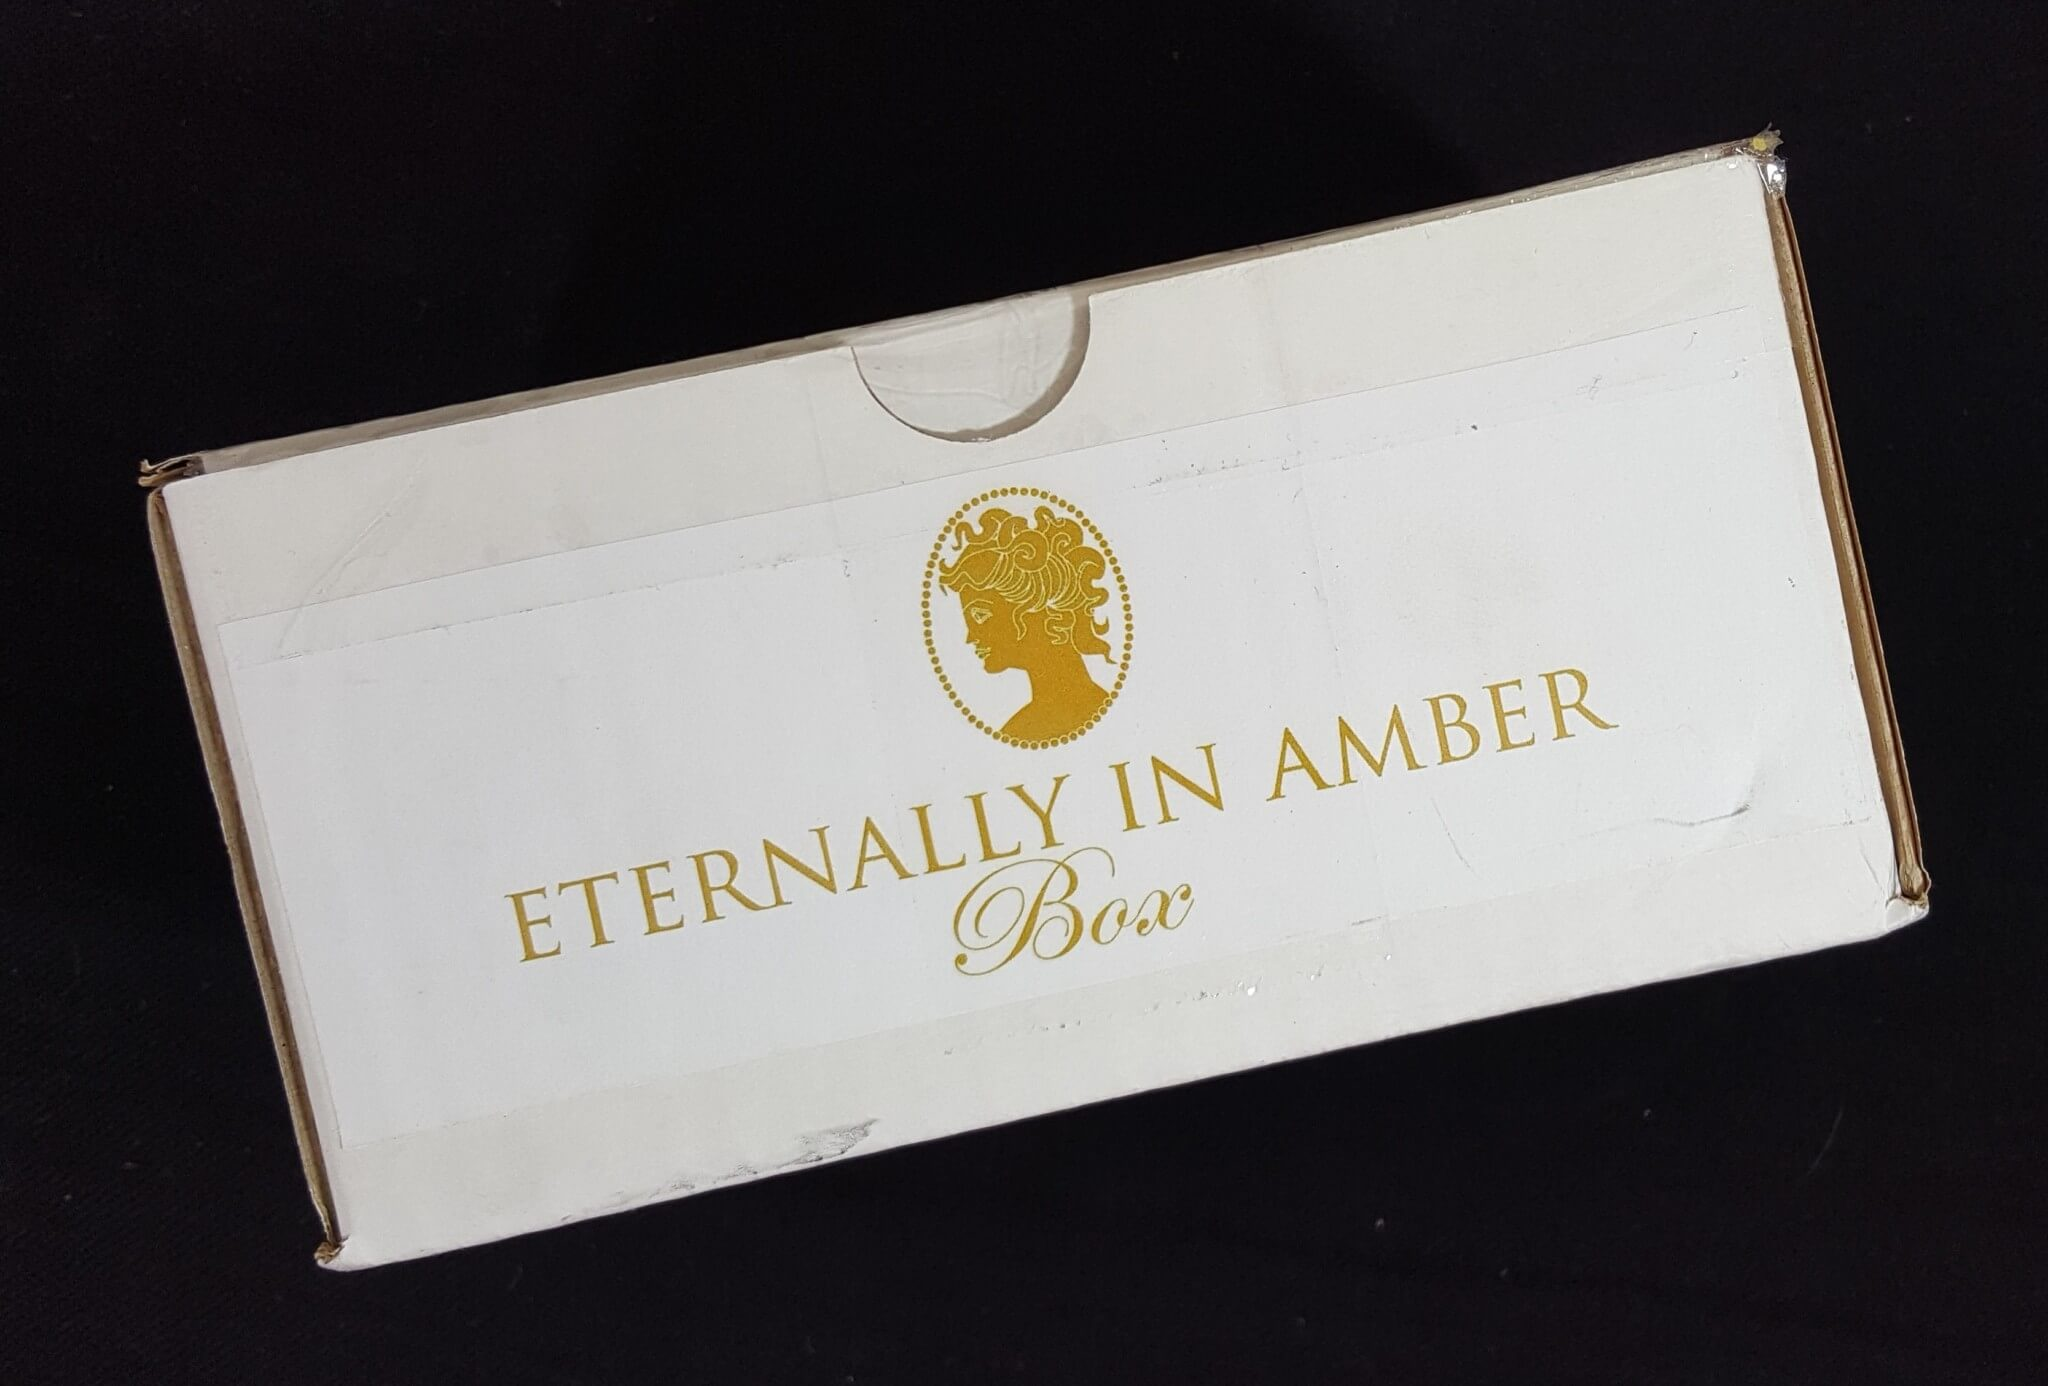 Eternally in Amber May 2016 Subscription Box Review & Coupon